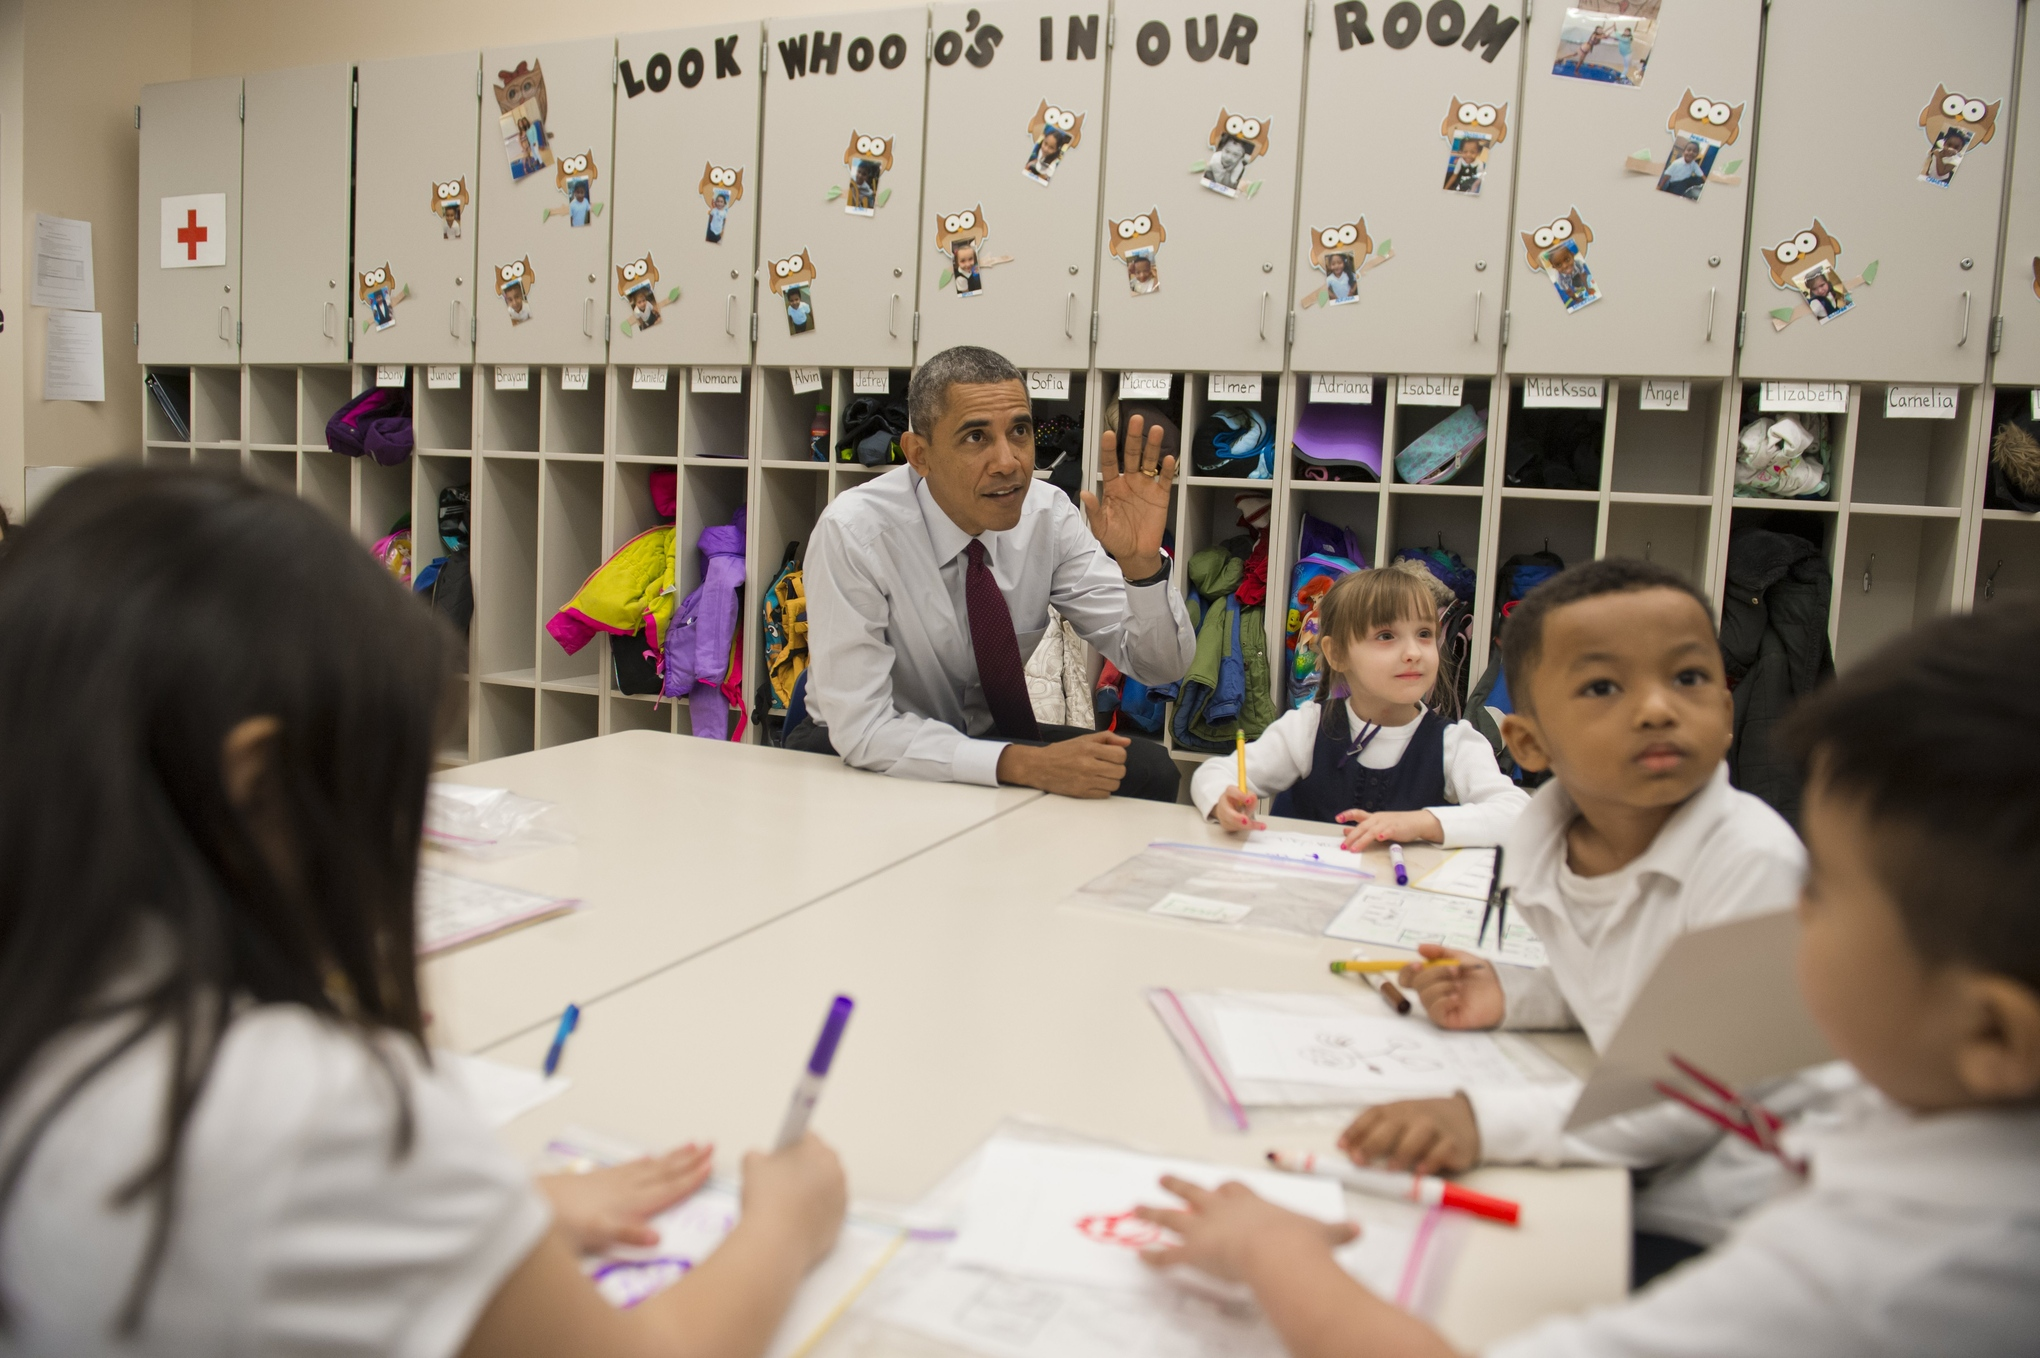 The Biggest Benefit Of Pre K Might Not Be Education